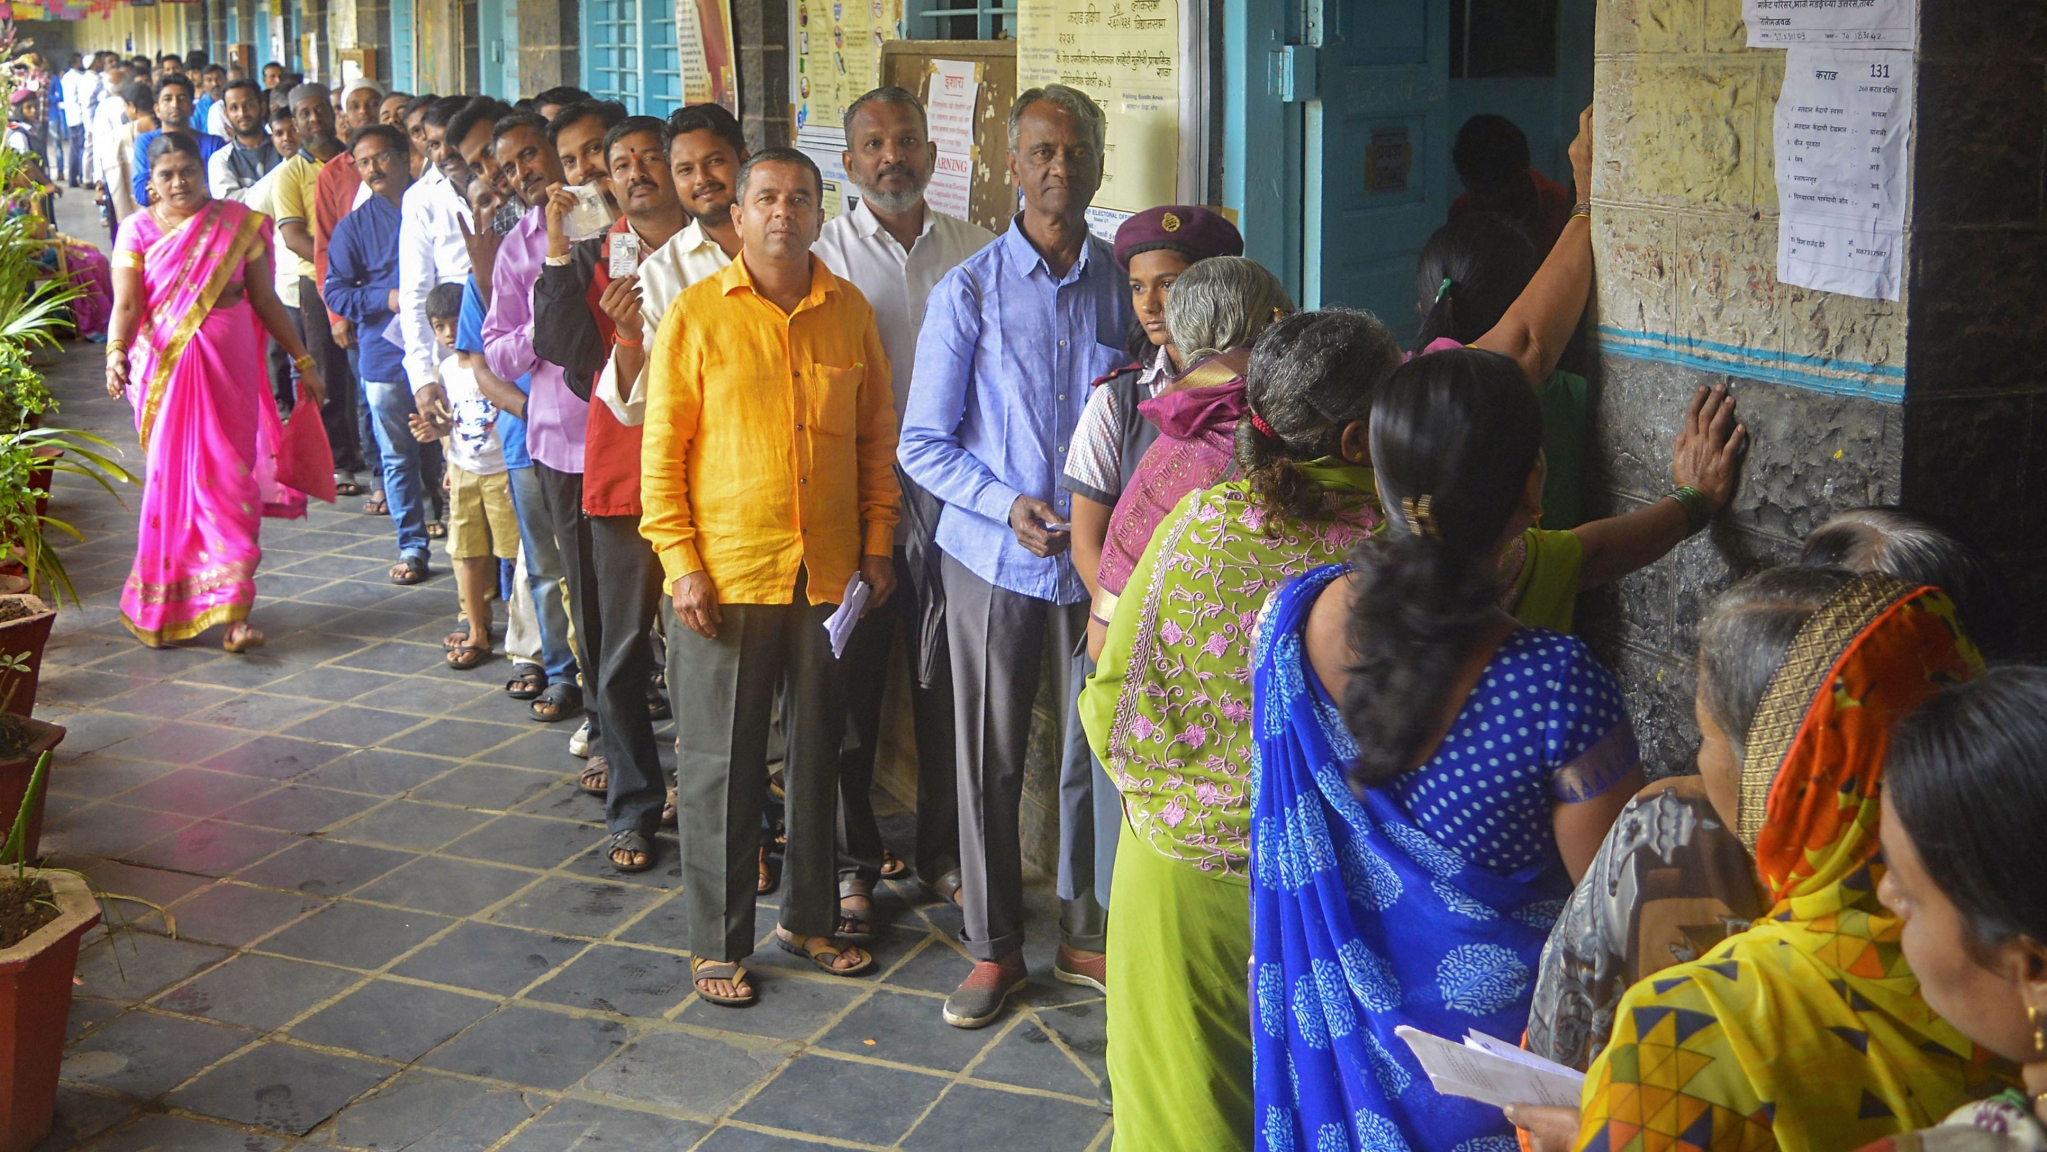 At 4 pm, 44% Voter Turnout in Maharashtra, 35% in Mumbai